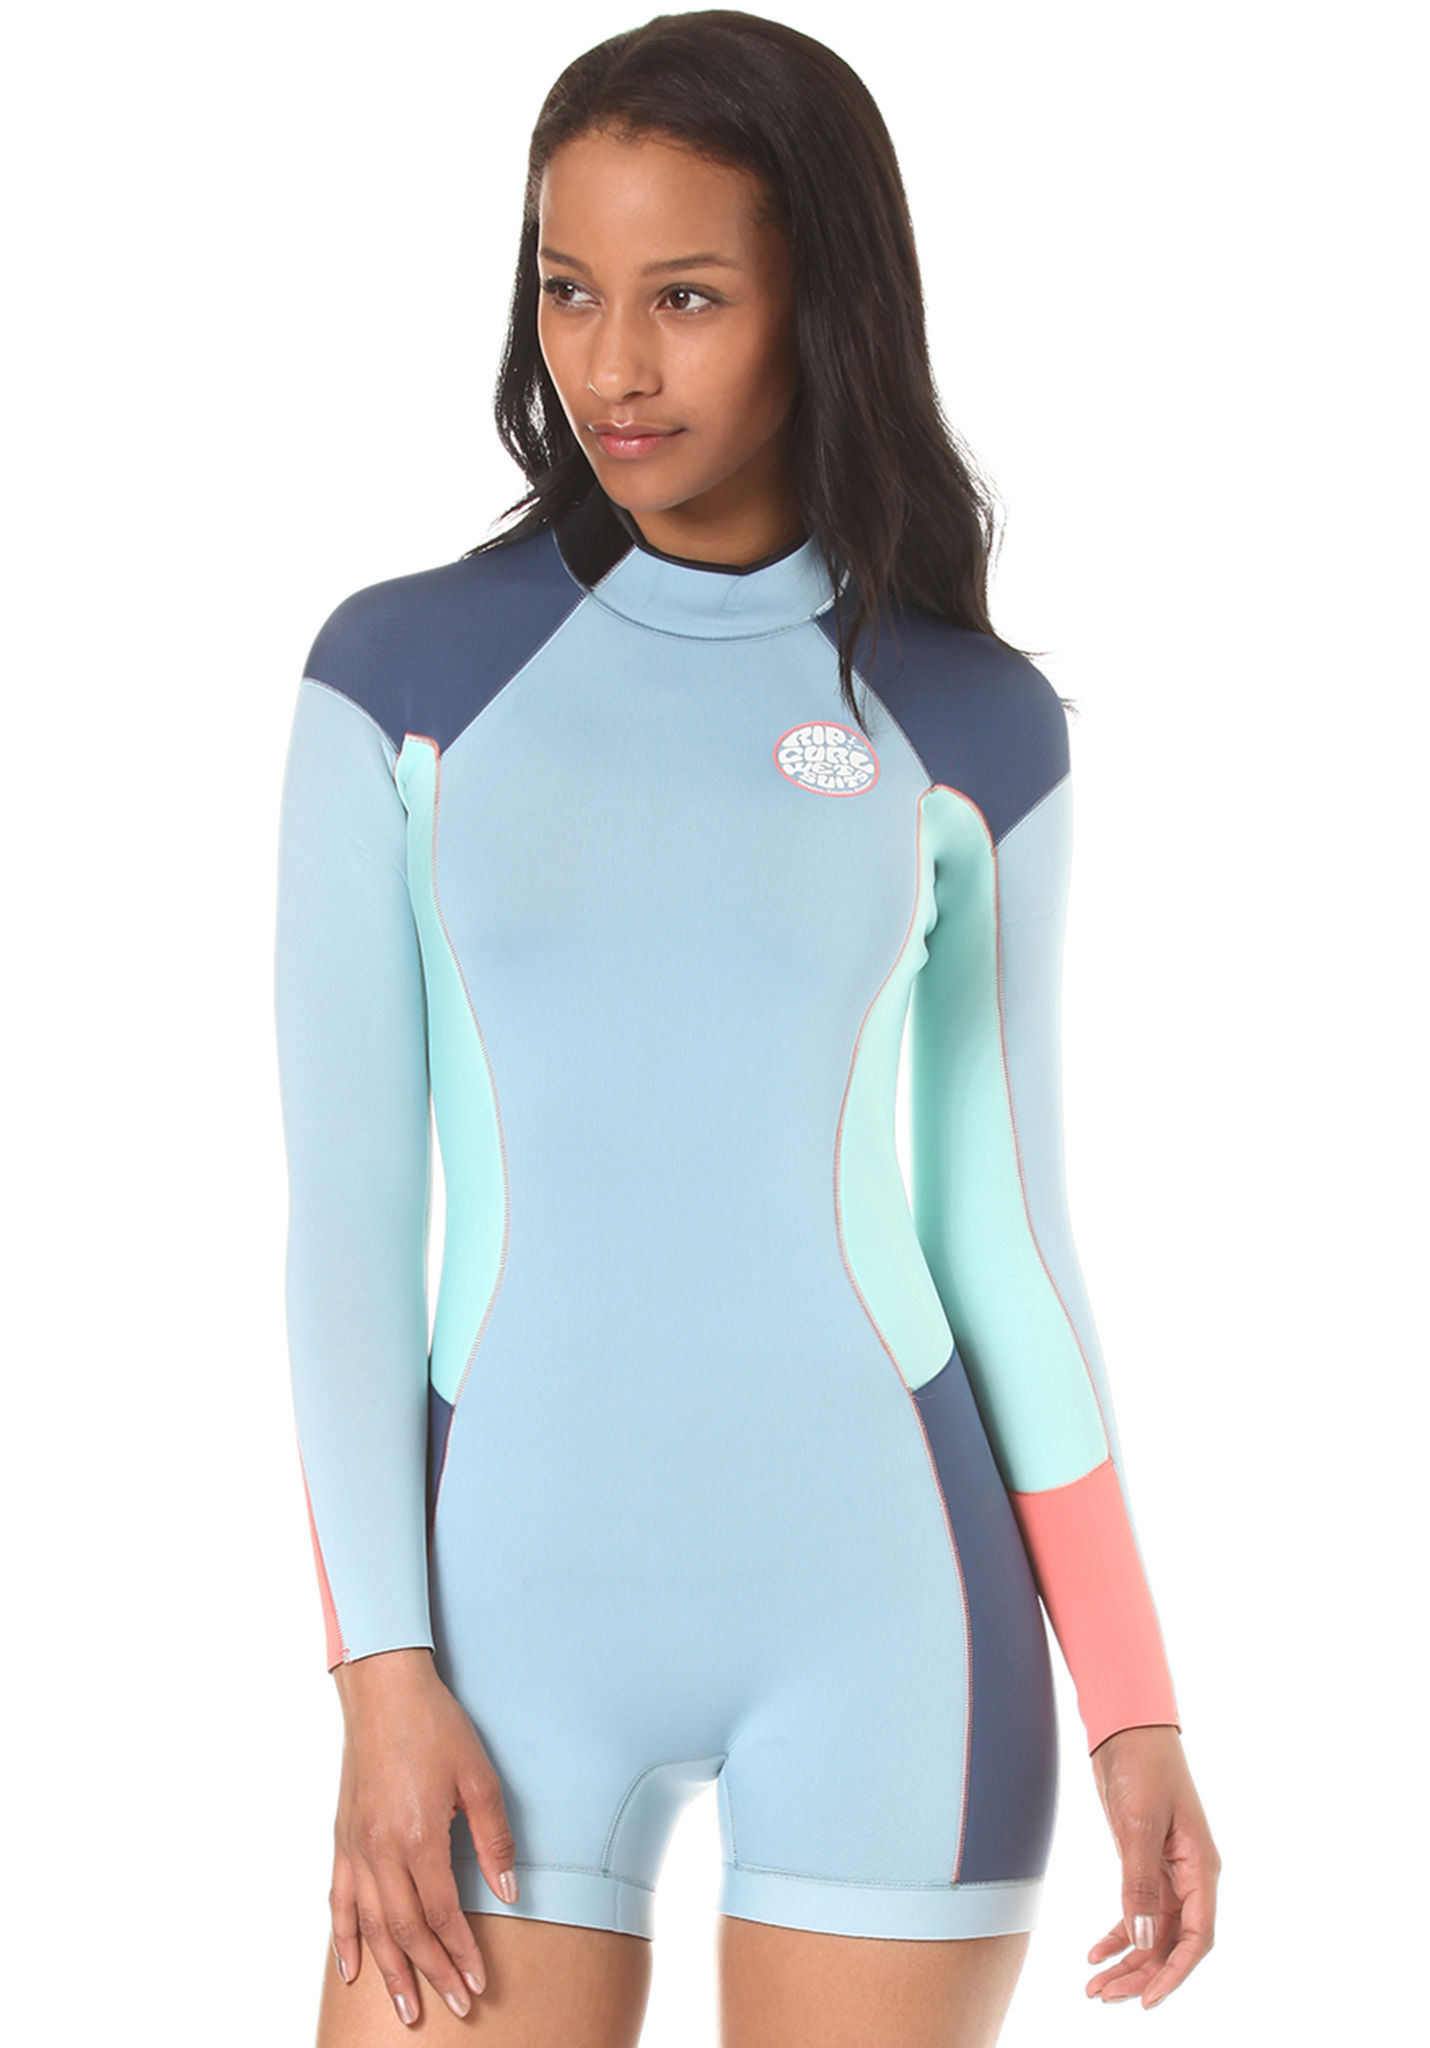 Rip Curl Dawn Patrol 2 2mm L S Back Zip - Wetsuit for Women - Blue - Planet  Sports 30a567f91